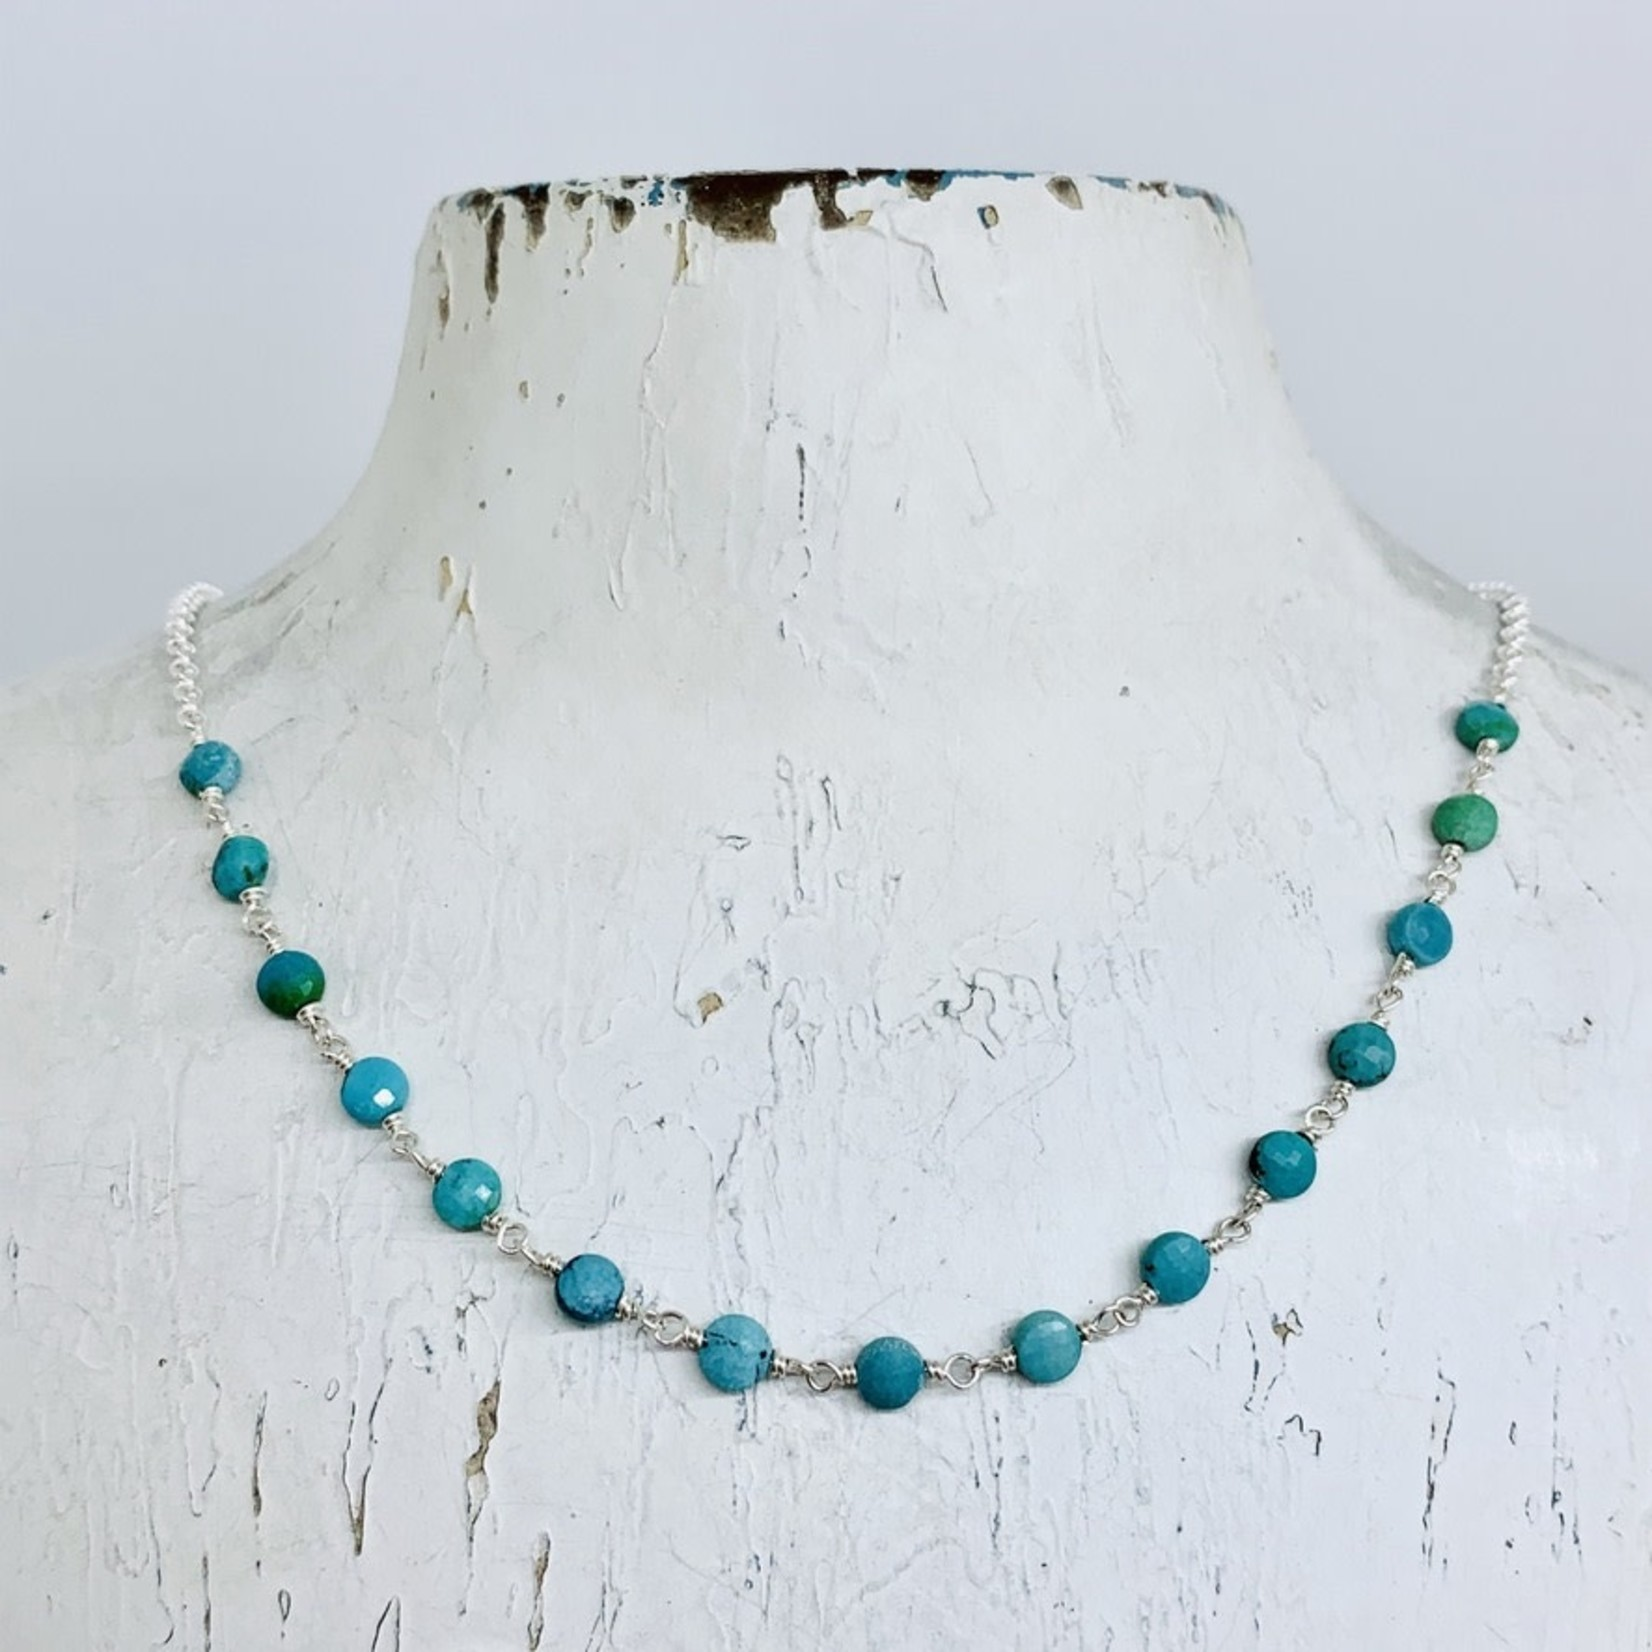 Handmade necklace with connected tiny turquoise coins